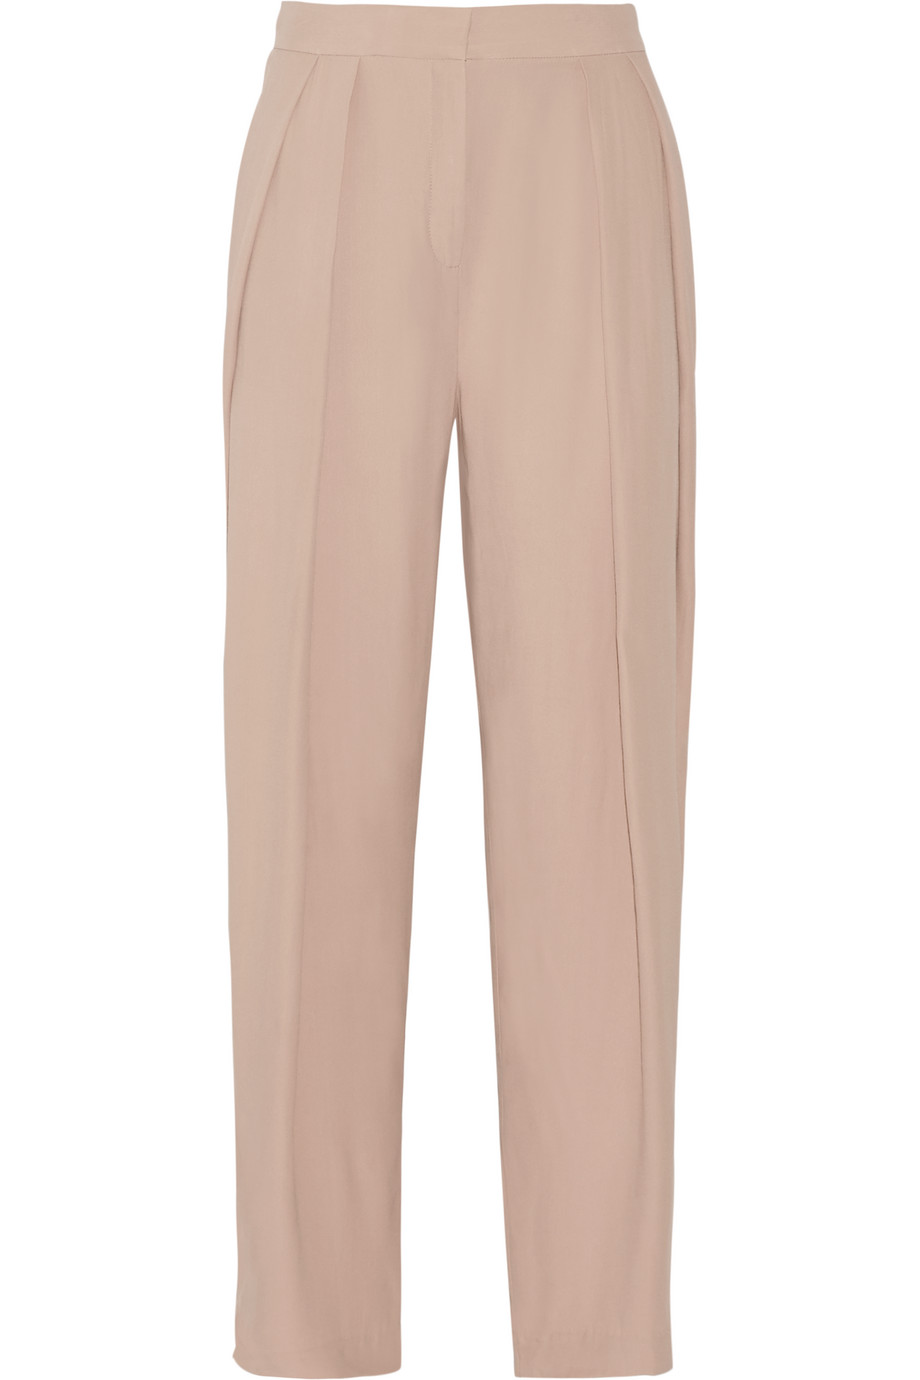 Melanoa Pleated Crepe Wide-Leg Pants, By Malene Birger, Blush, Women's, Size: 40